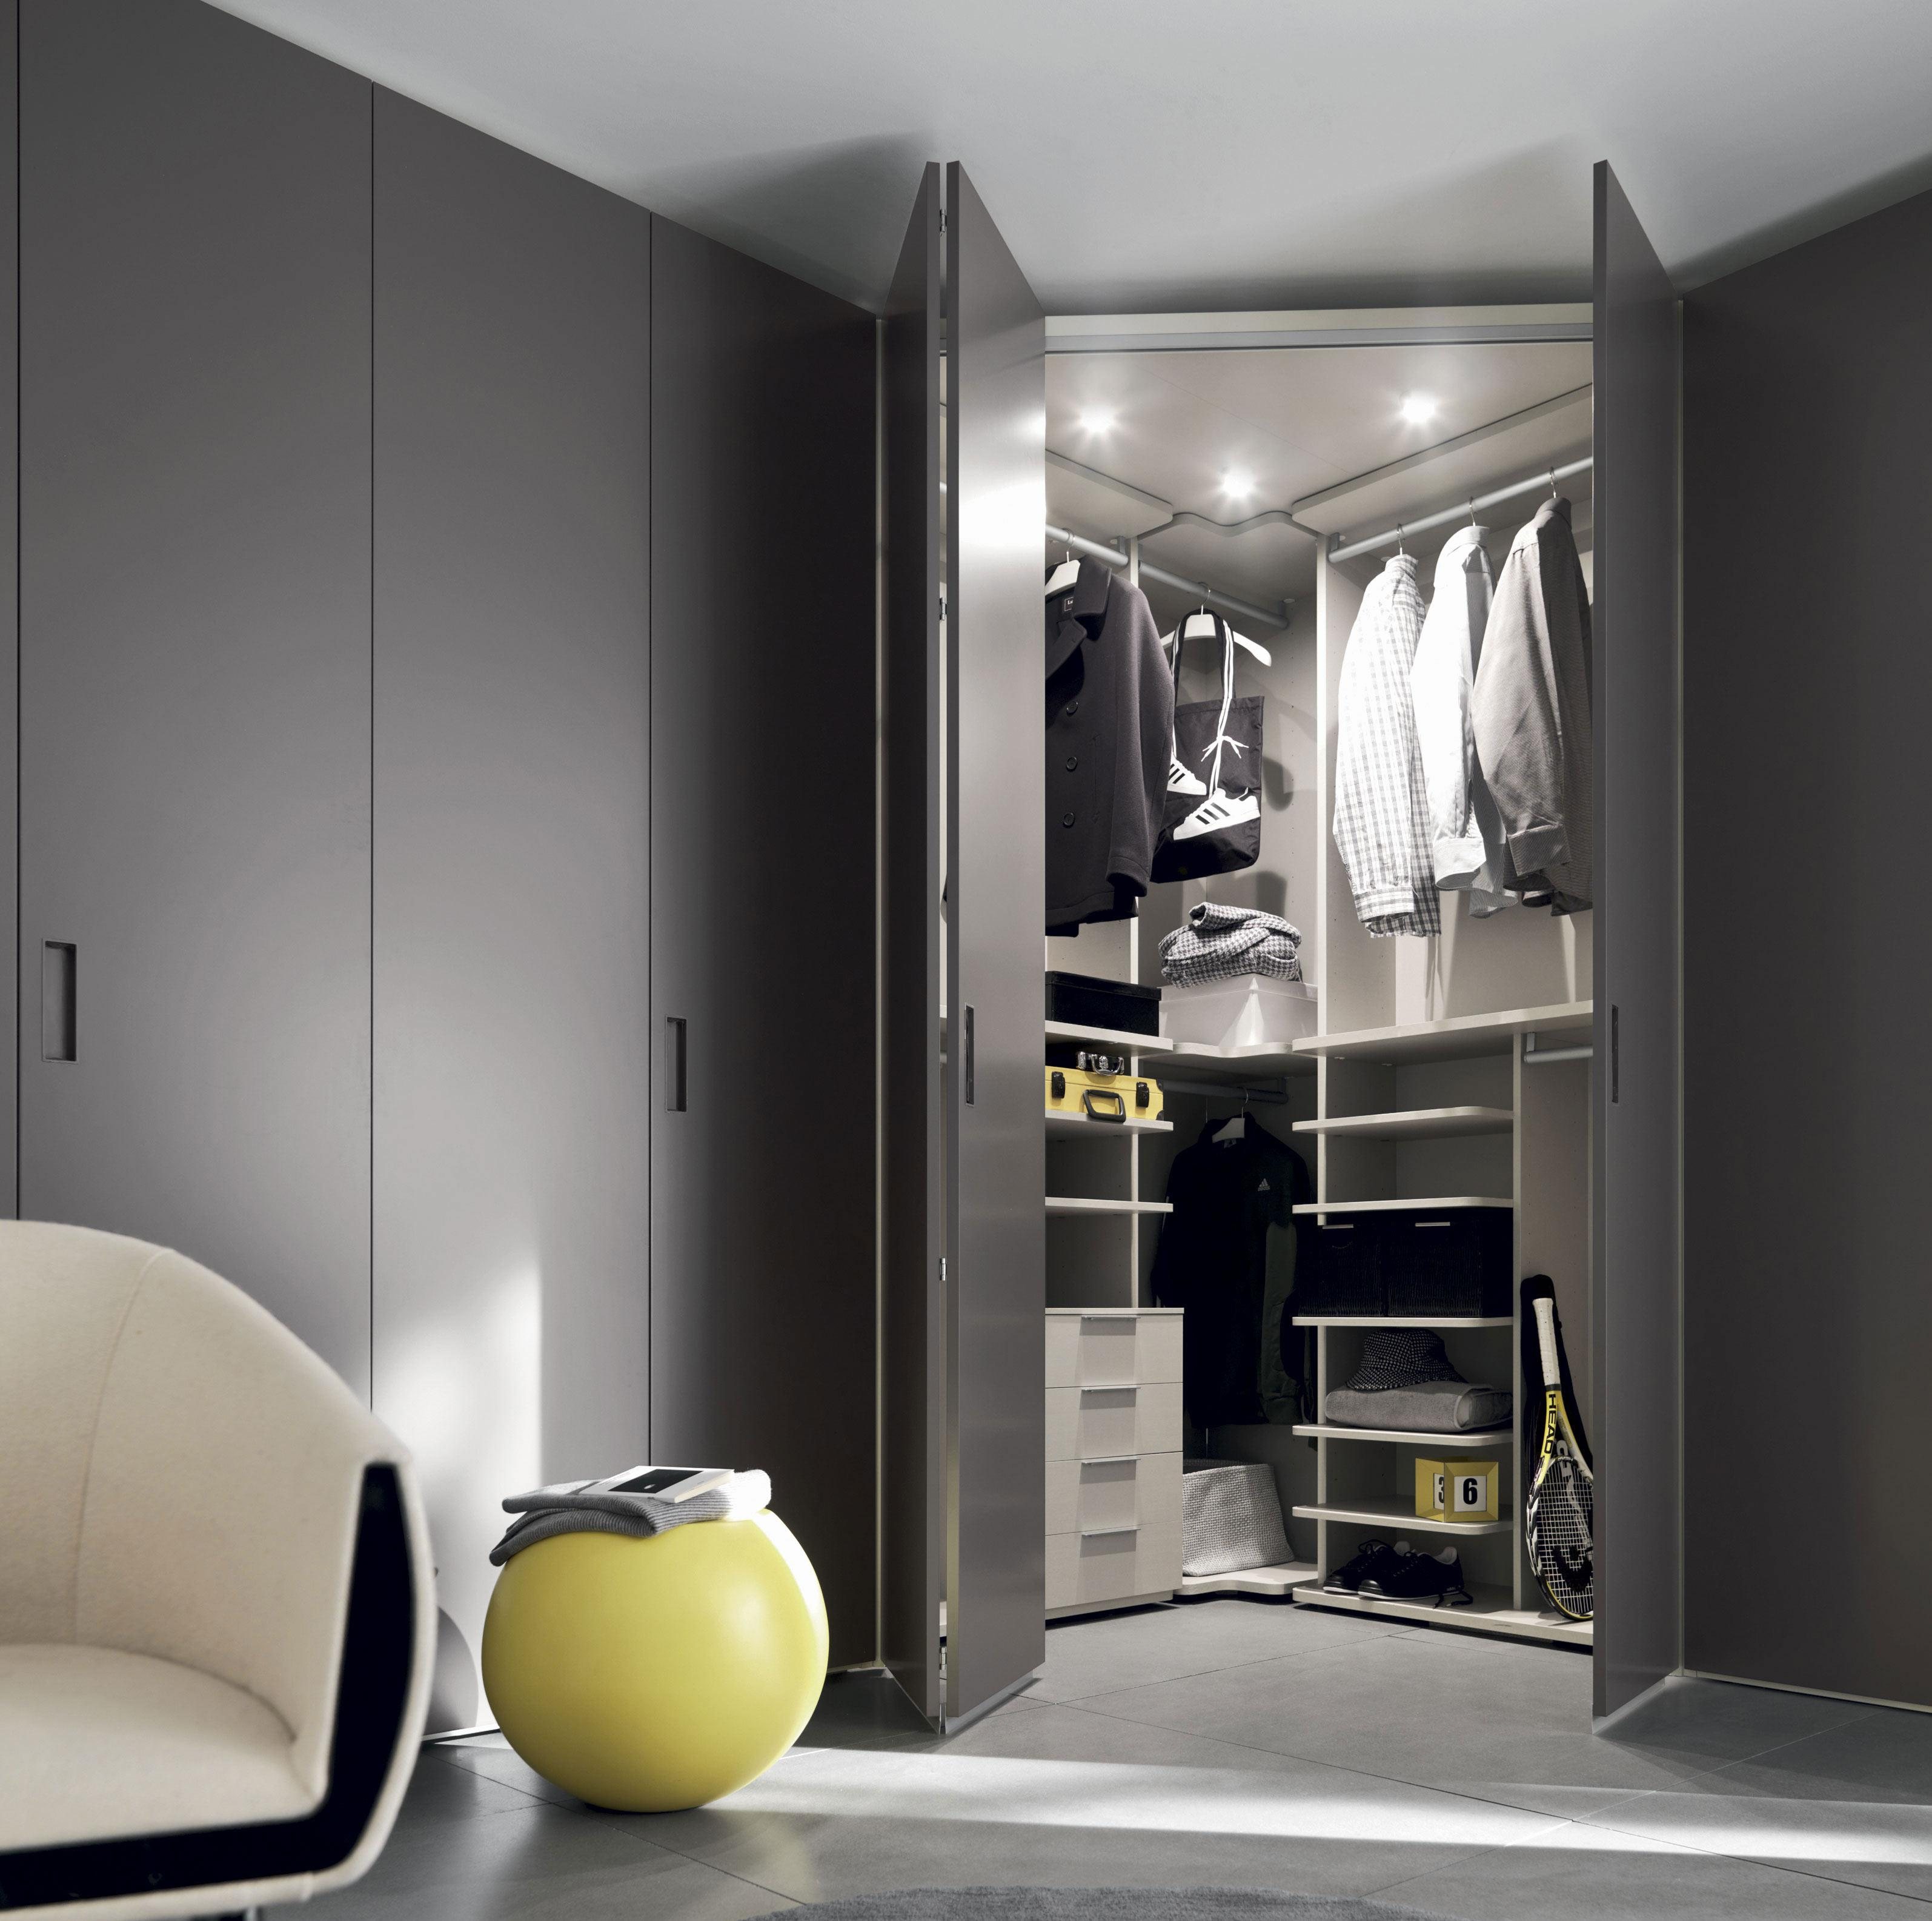 eckkleiderschr nke im trend platz richtig nutzen. Black Bedroom Furniture Sets. Home Design Ideas